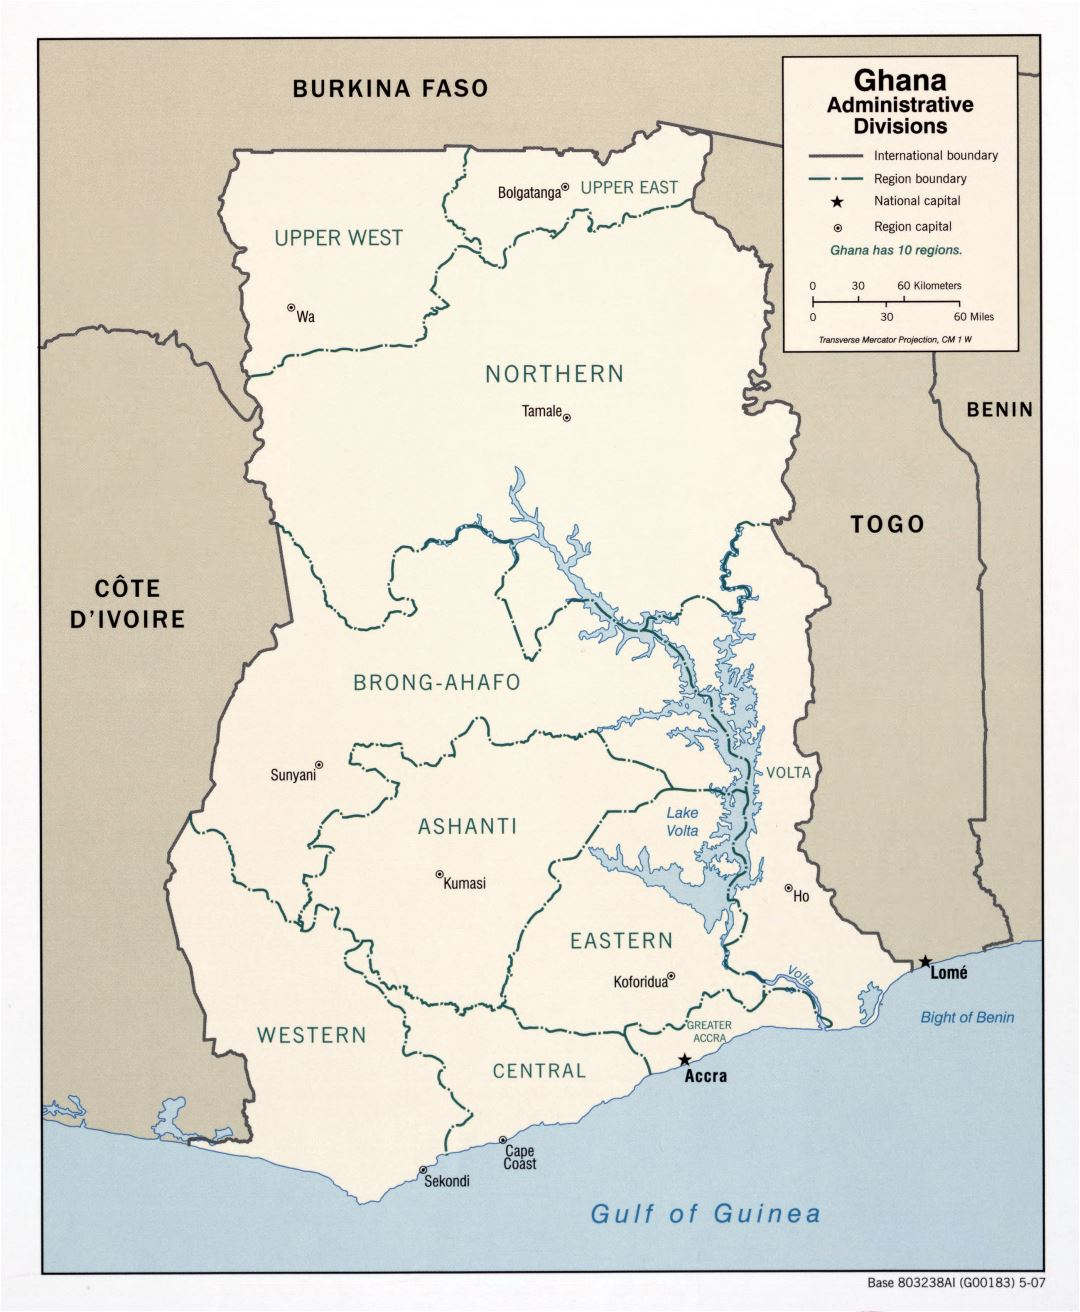 Large detailed administrative divisions map of Ghana - 2007